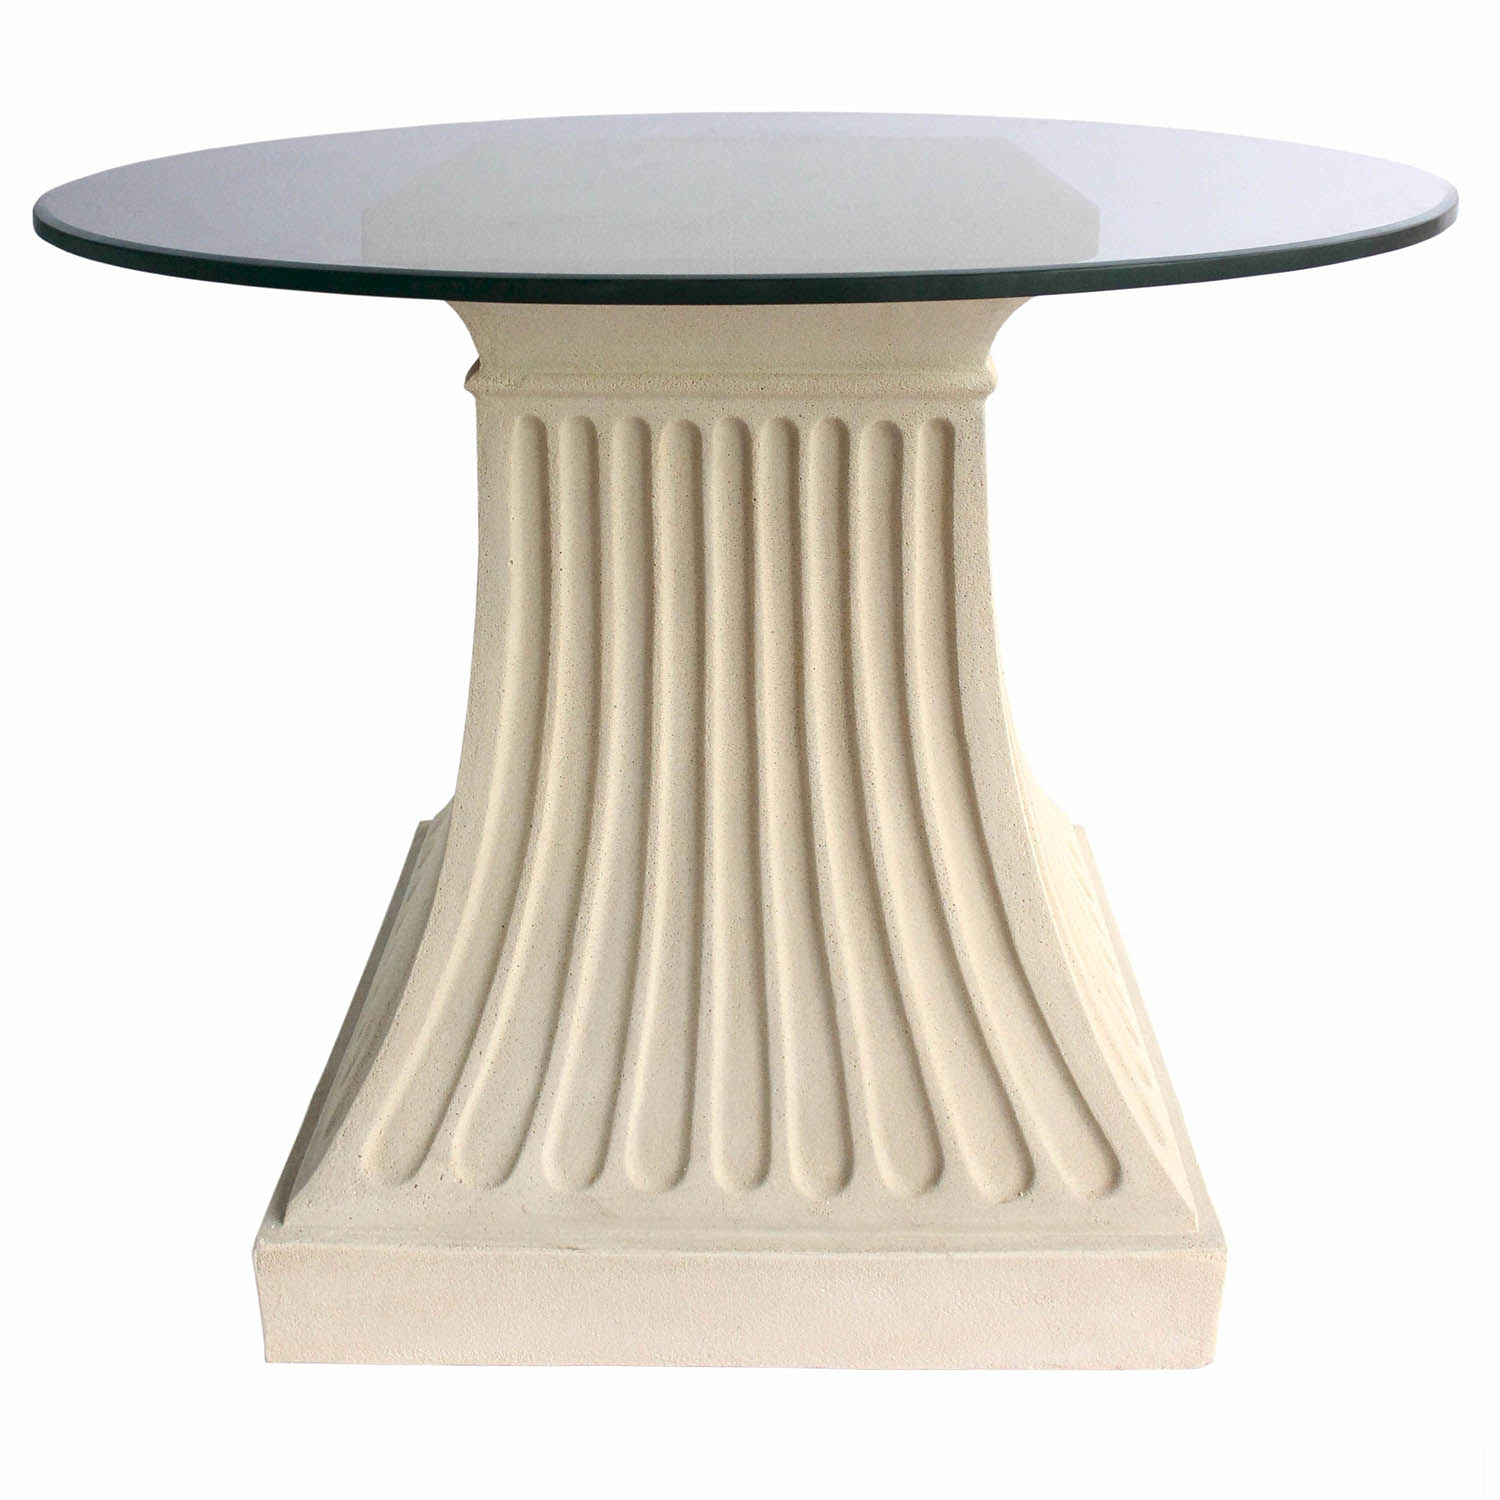 Choose Fluted Cast Limestone Dining Glass Top Table 1 6